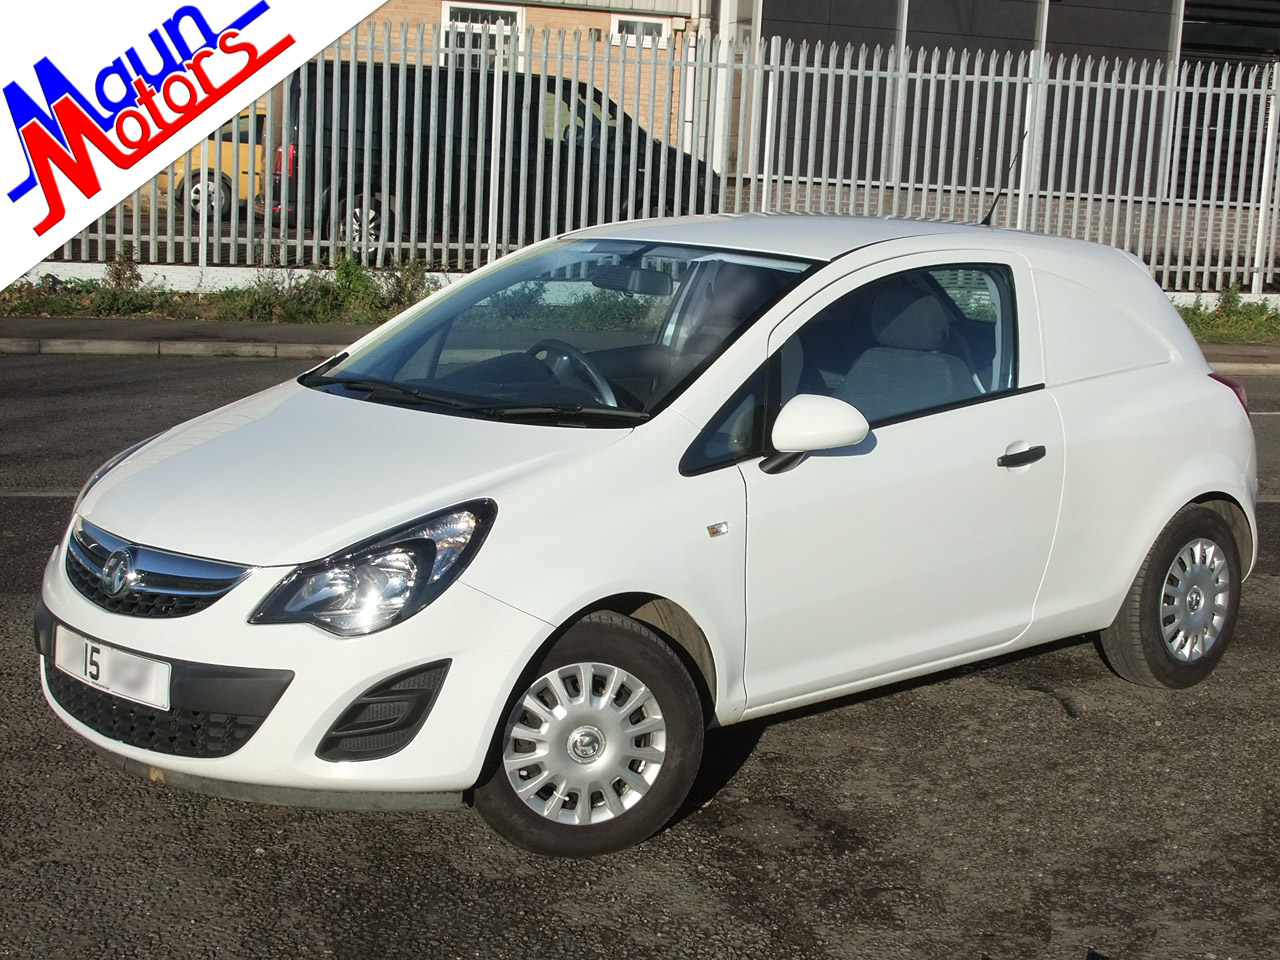 Vauxhall Corsa used car-derived vans for sale